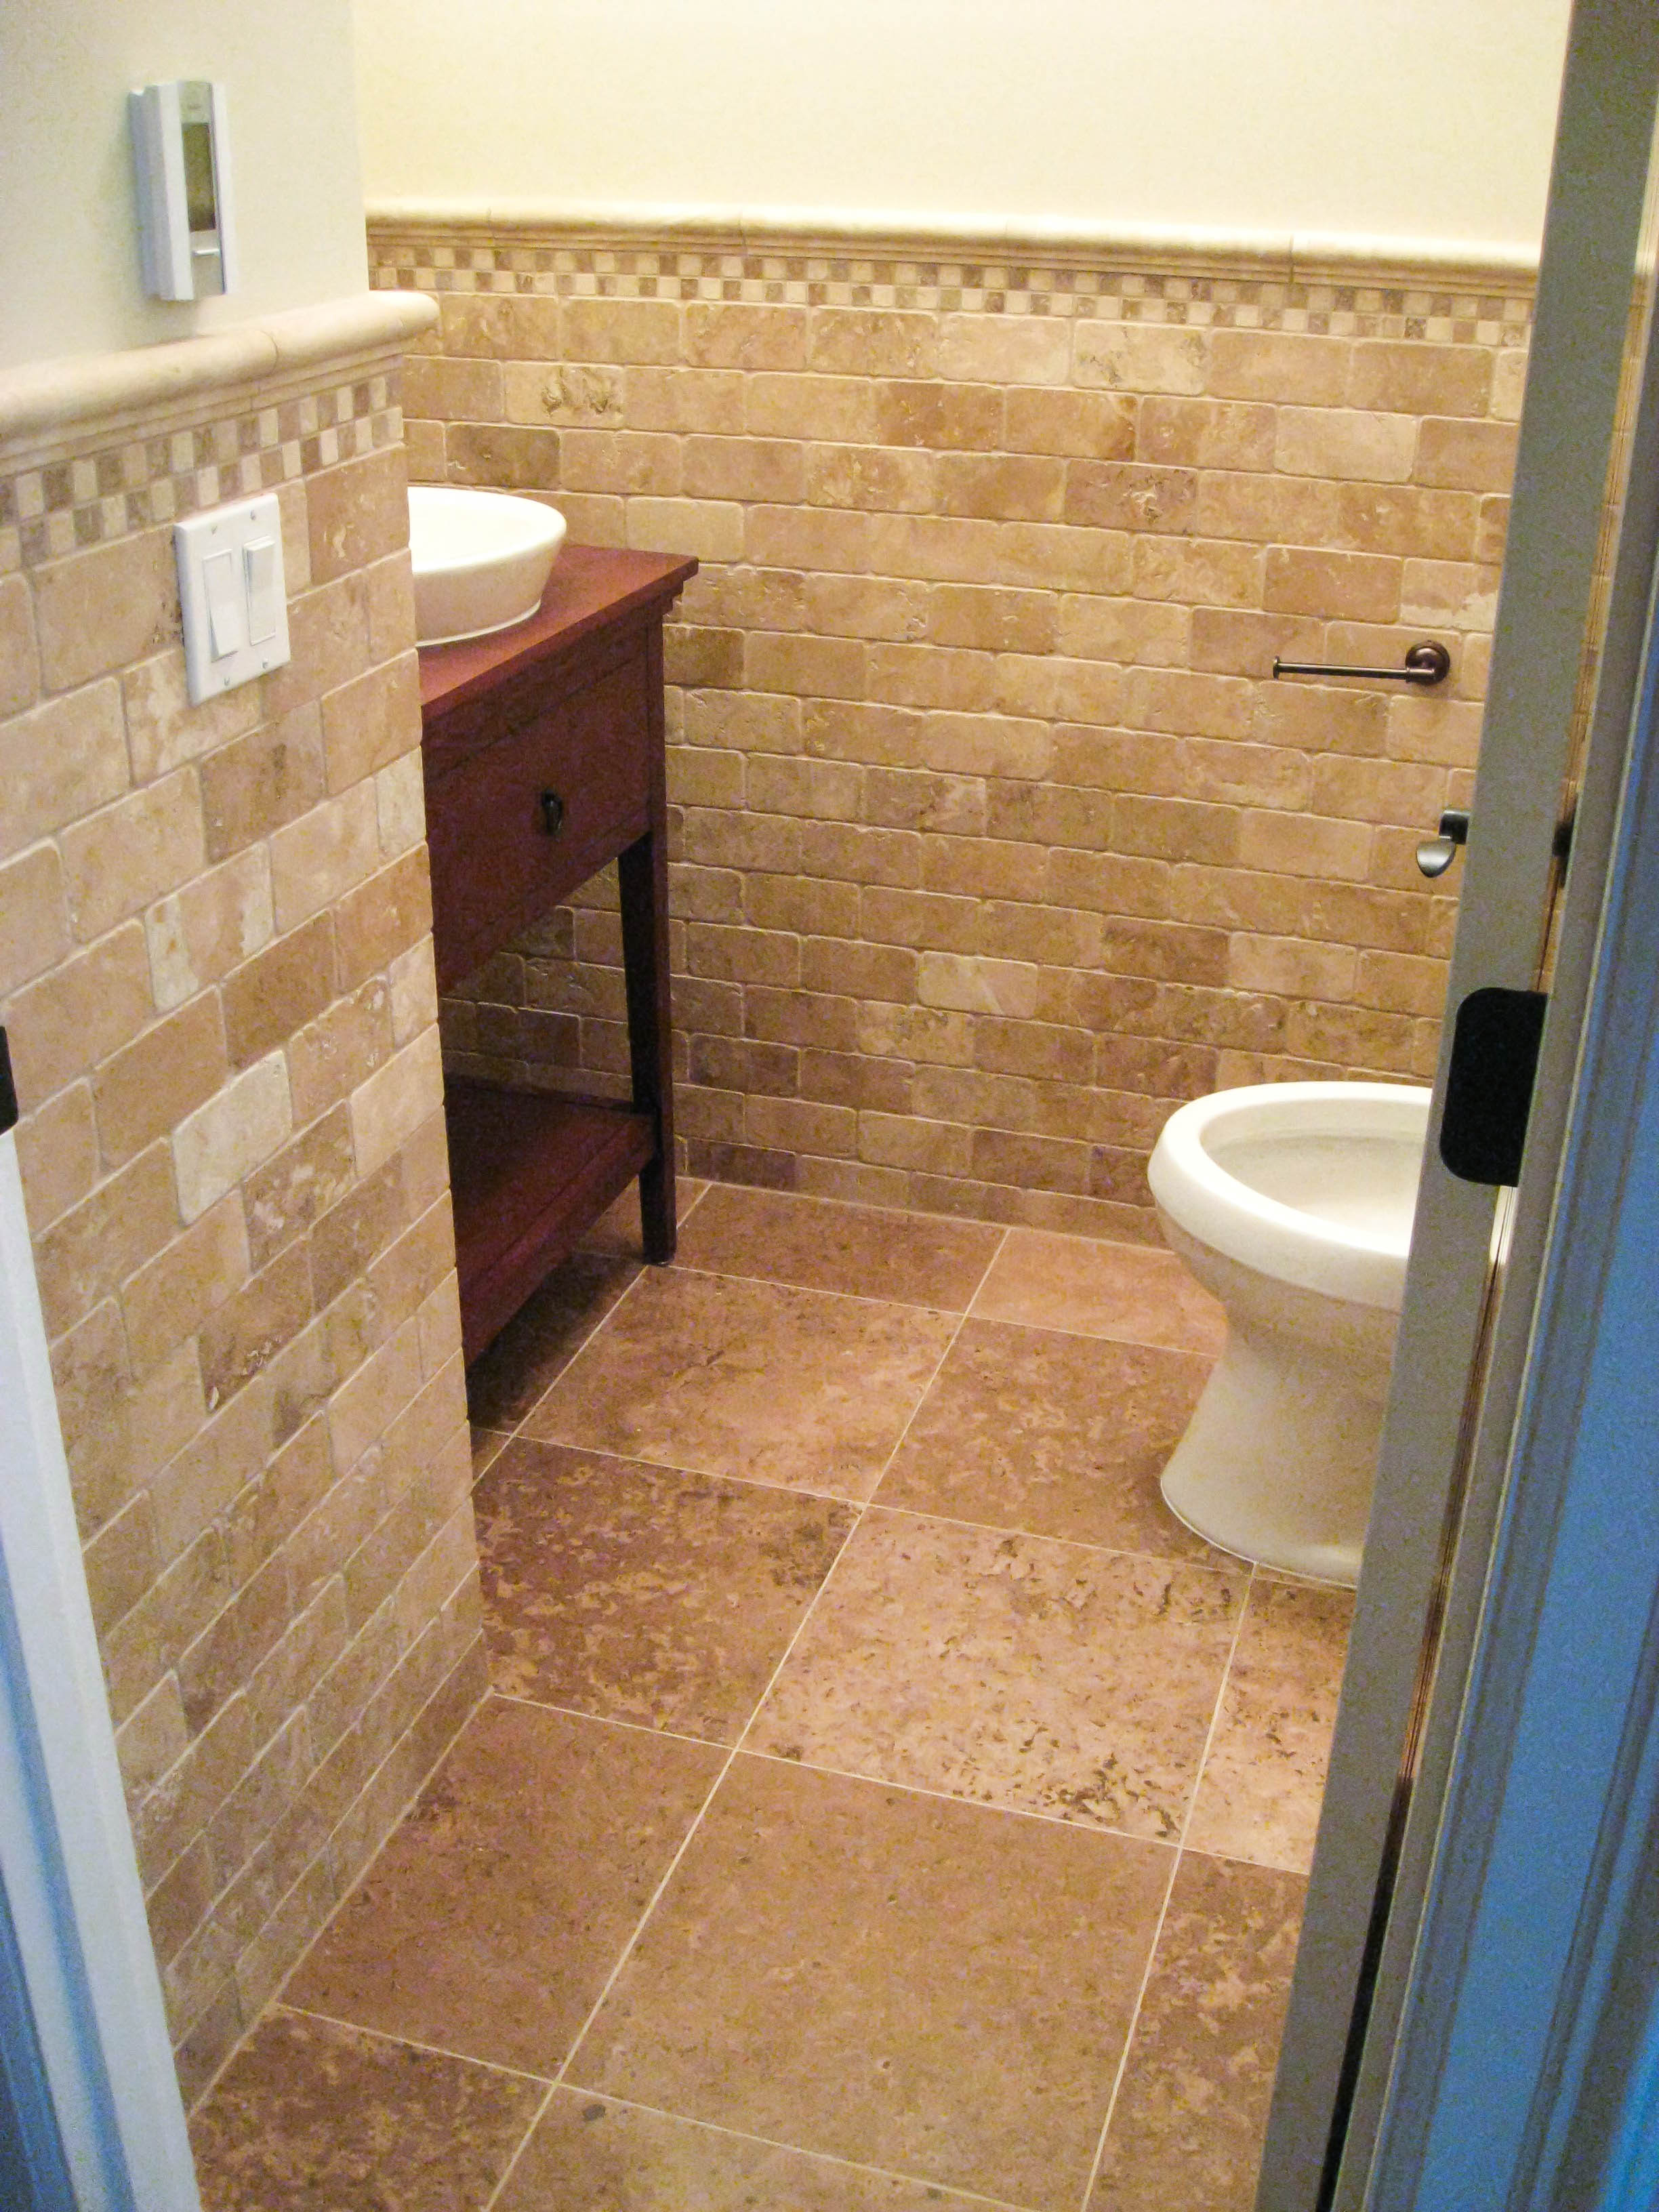 Bathroom wainscoting gallery tile contractor irc tiles Bathroom tile pictures gallery